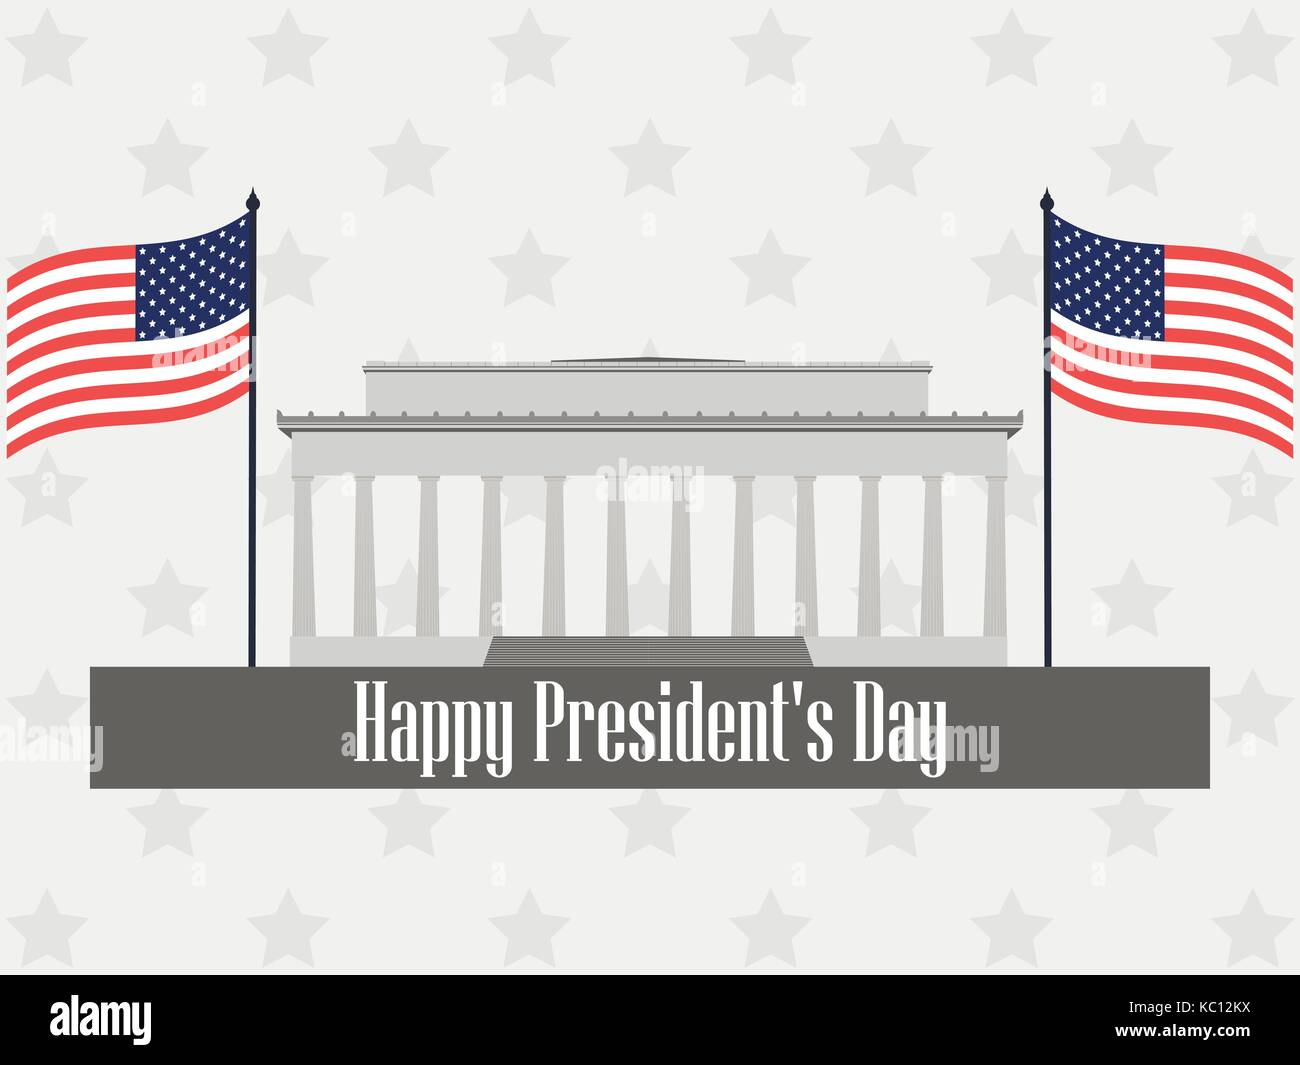 Happy Presidents Day. Poster with american flag and symbols. Vector illustration - Stock Vector